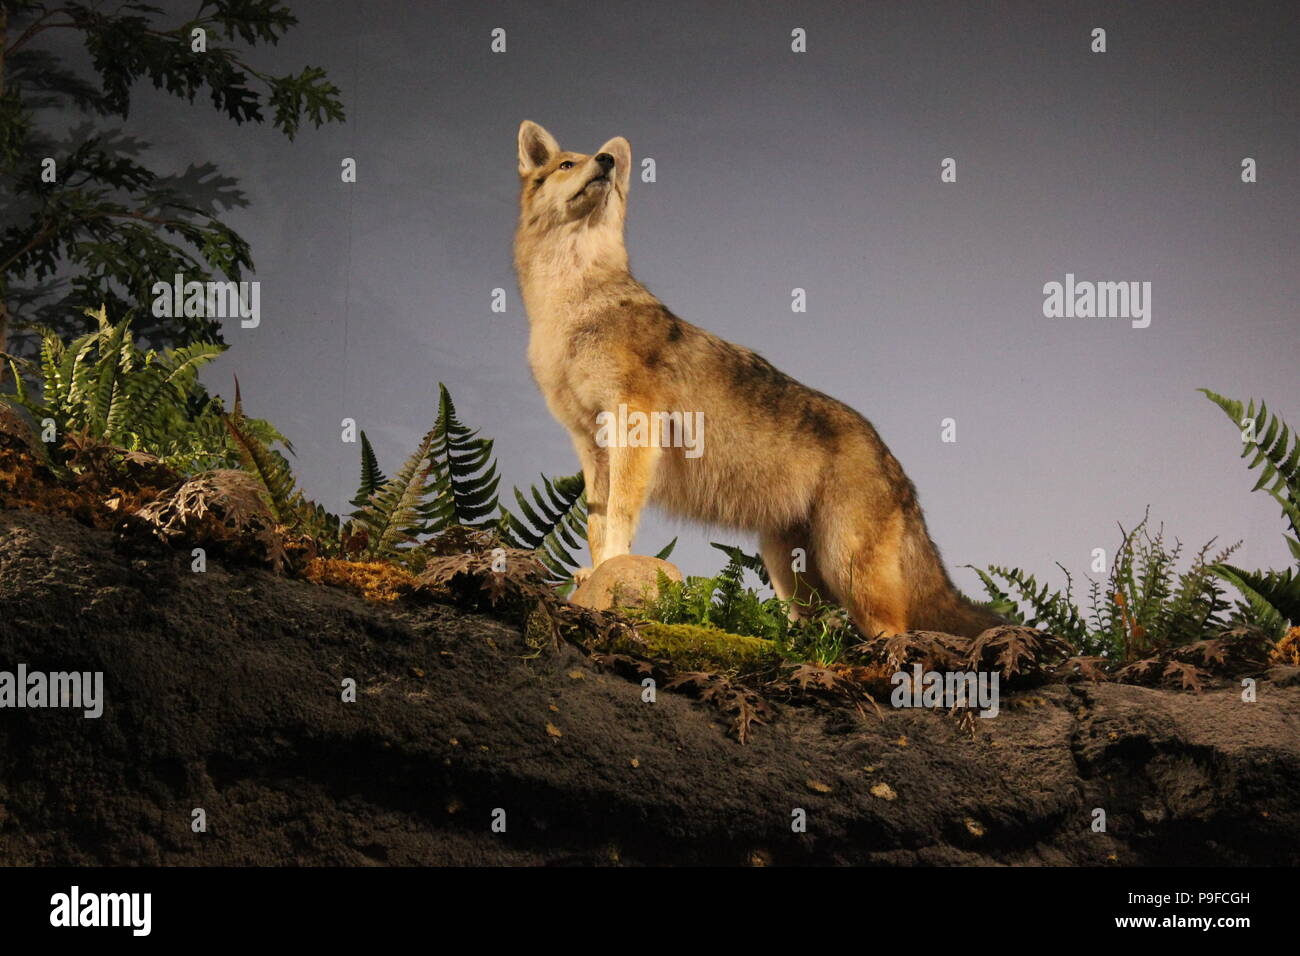 Wild wolf taxidermy at the Children's Museum in Indianapolis, Indiana. Stock Photo